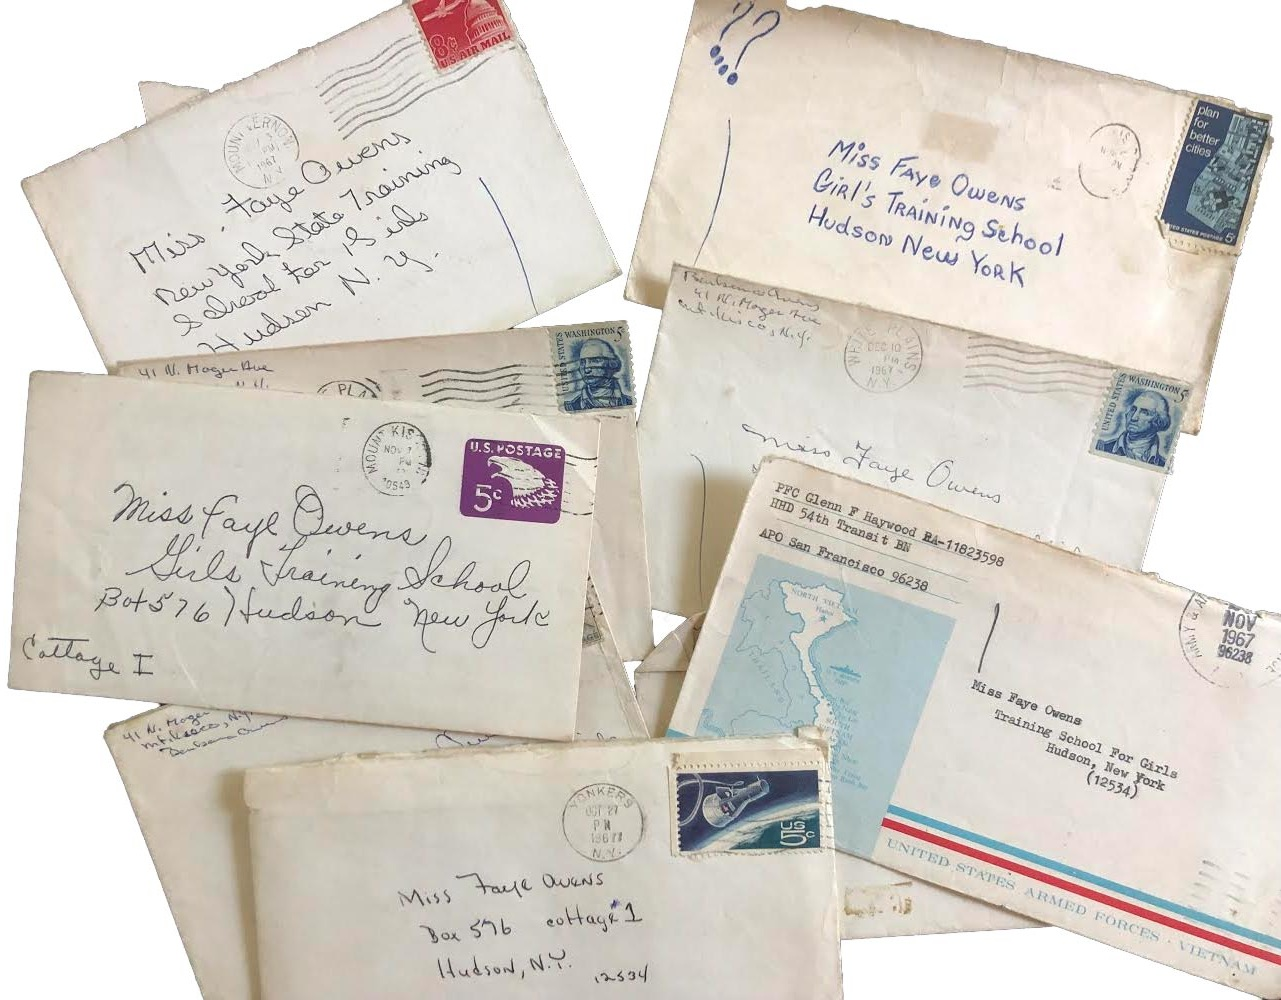 Letters sent to the NYS Training School for Girls in Hudson, NY